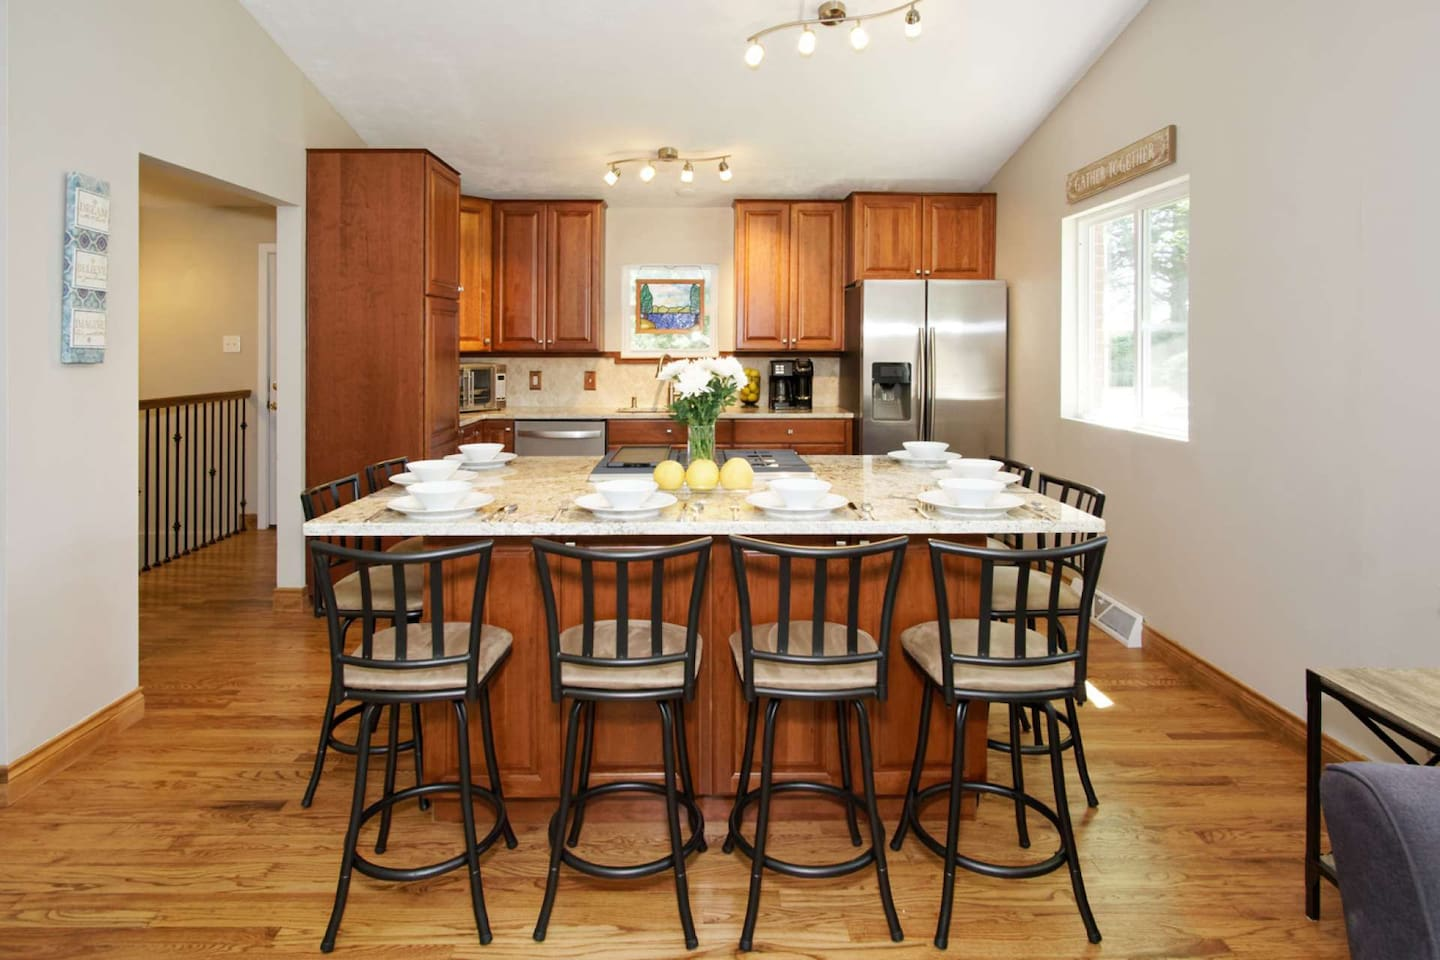 This kitchen was designed and equipped by a food lover. We think you'll love it, too!